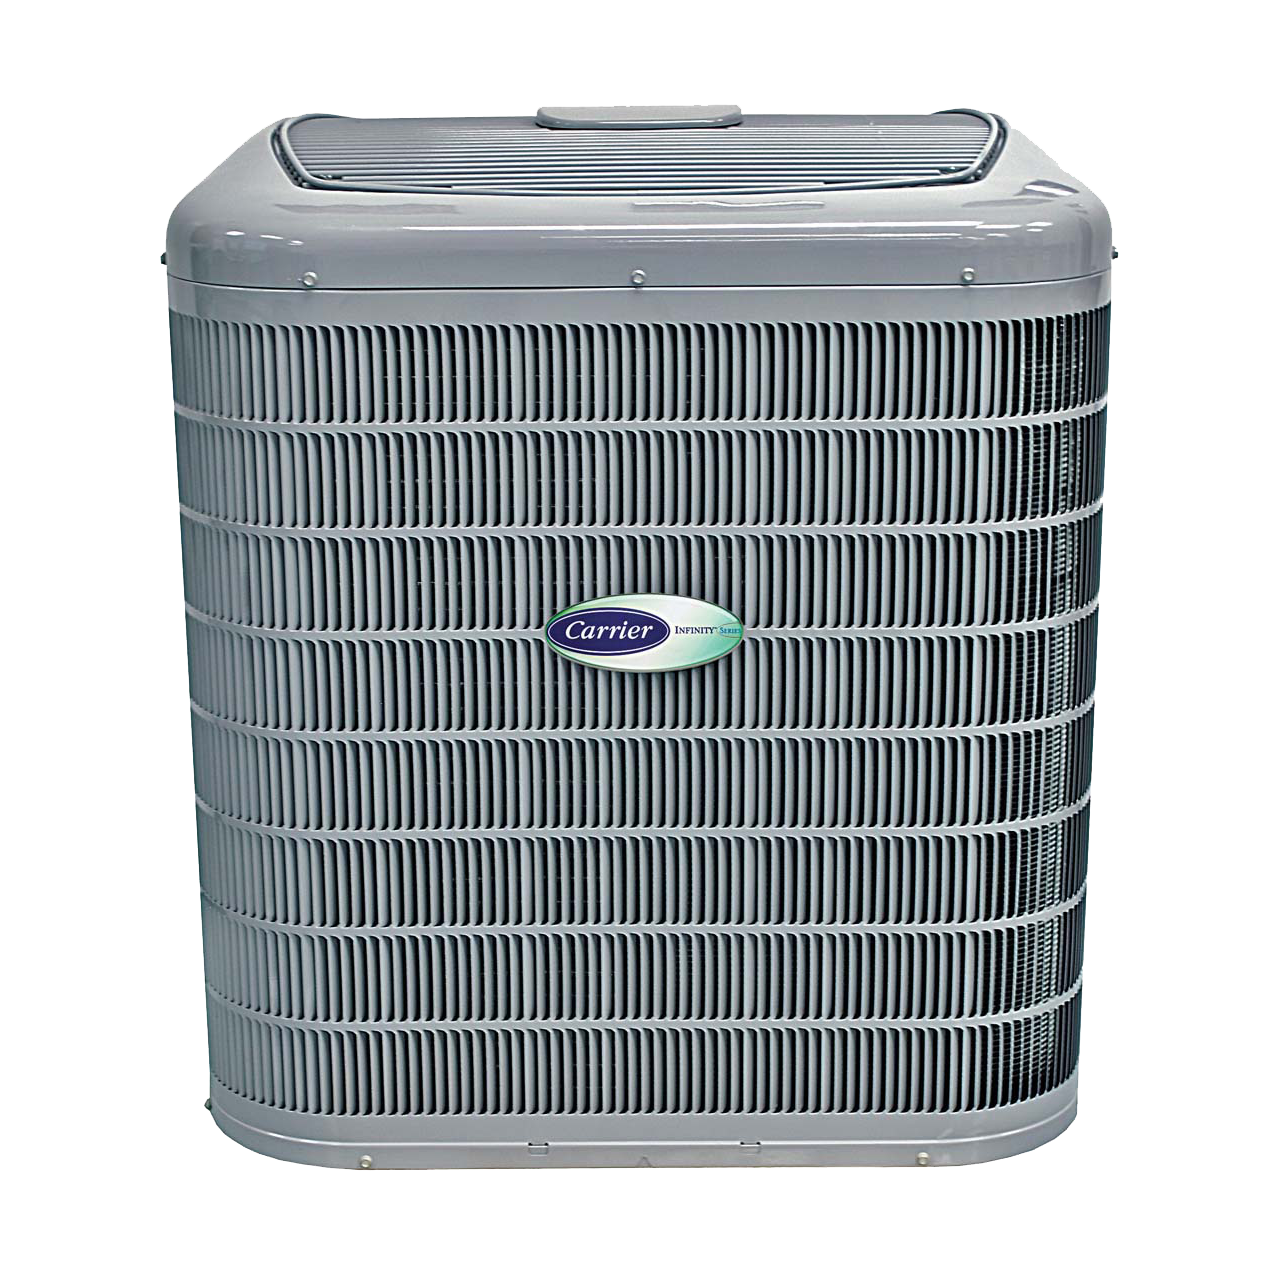 Carrier Infinity 16 Central Air Conditioner